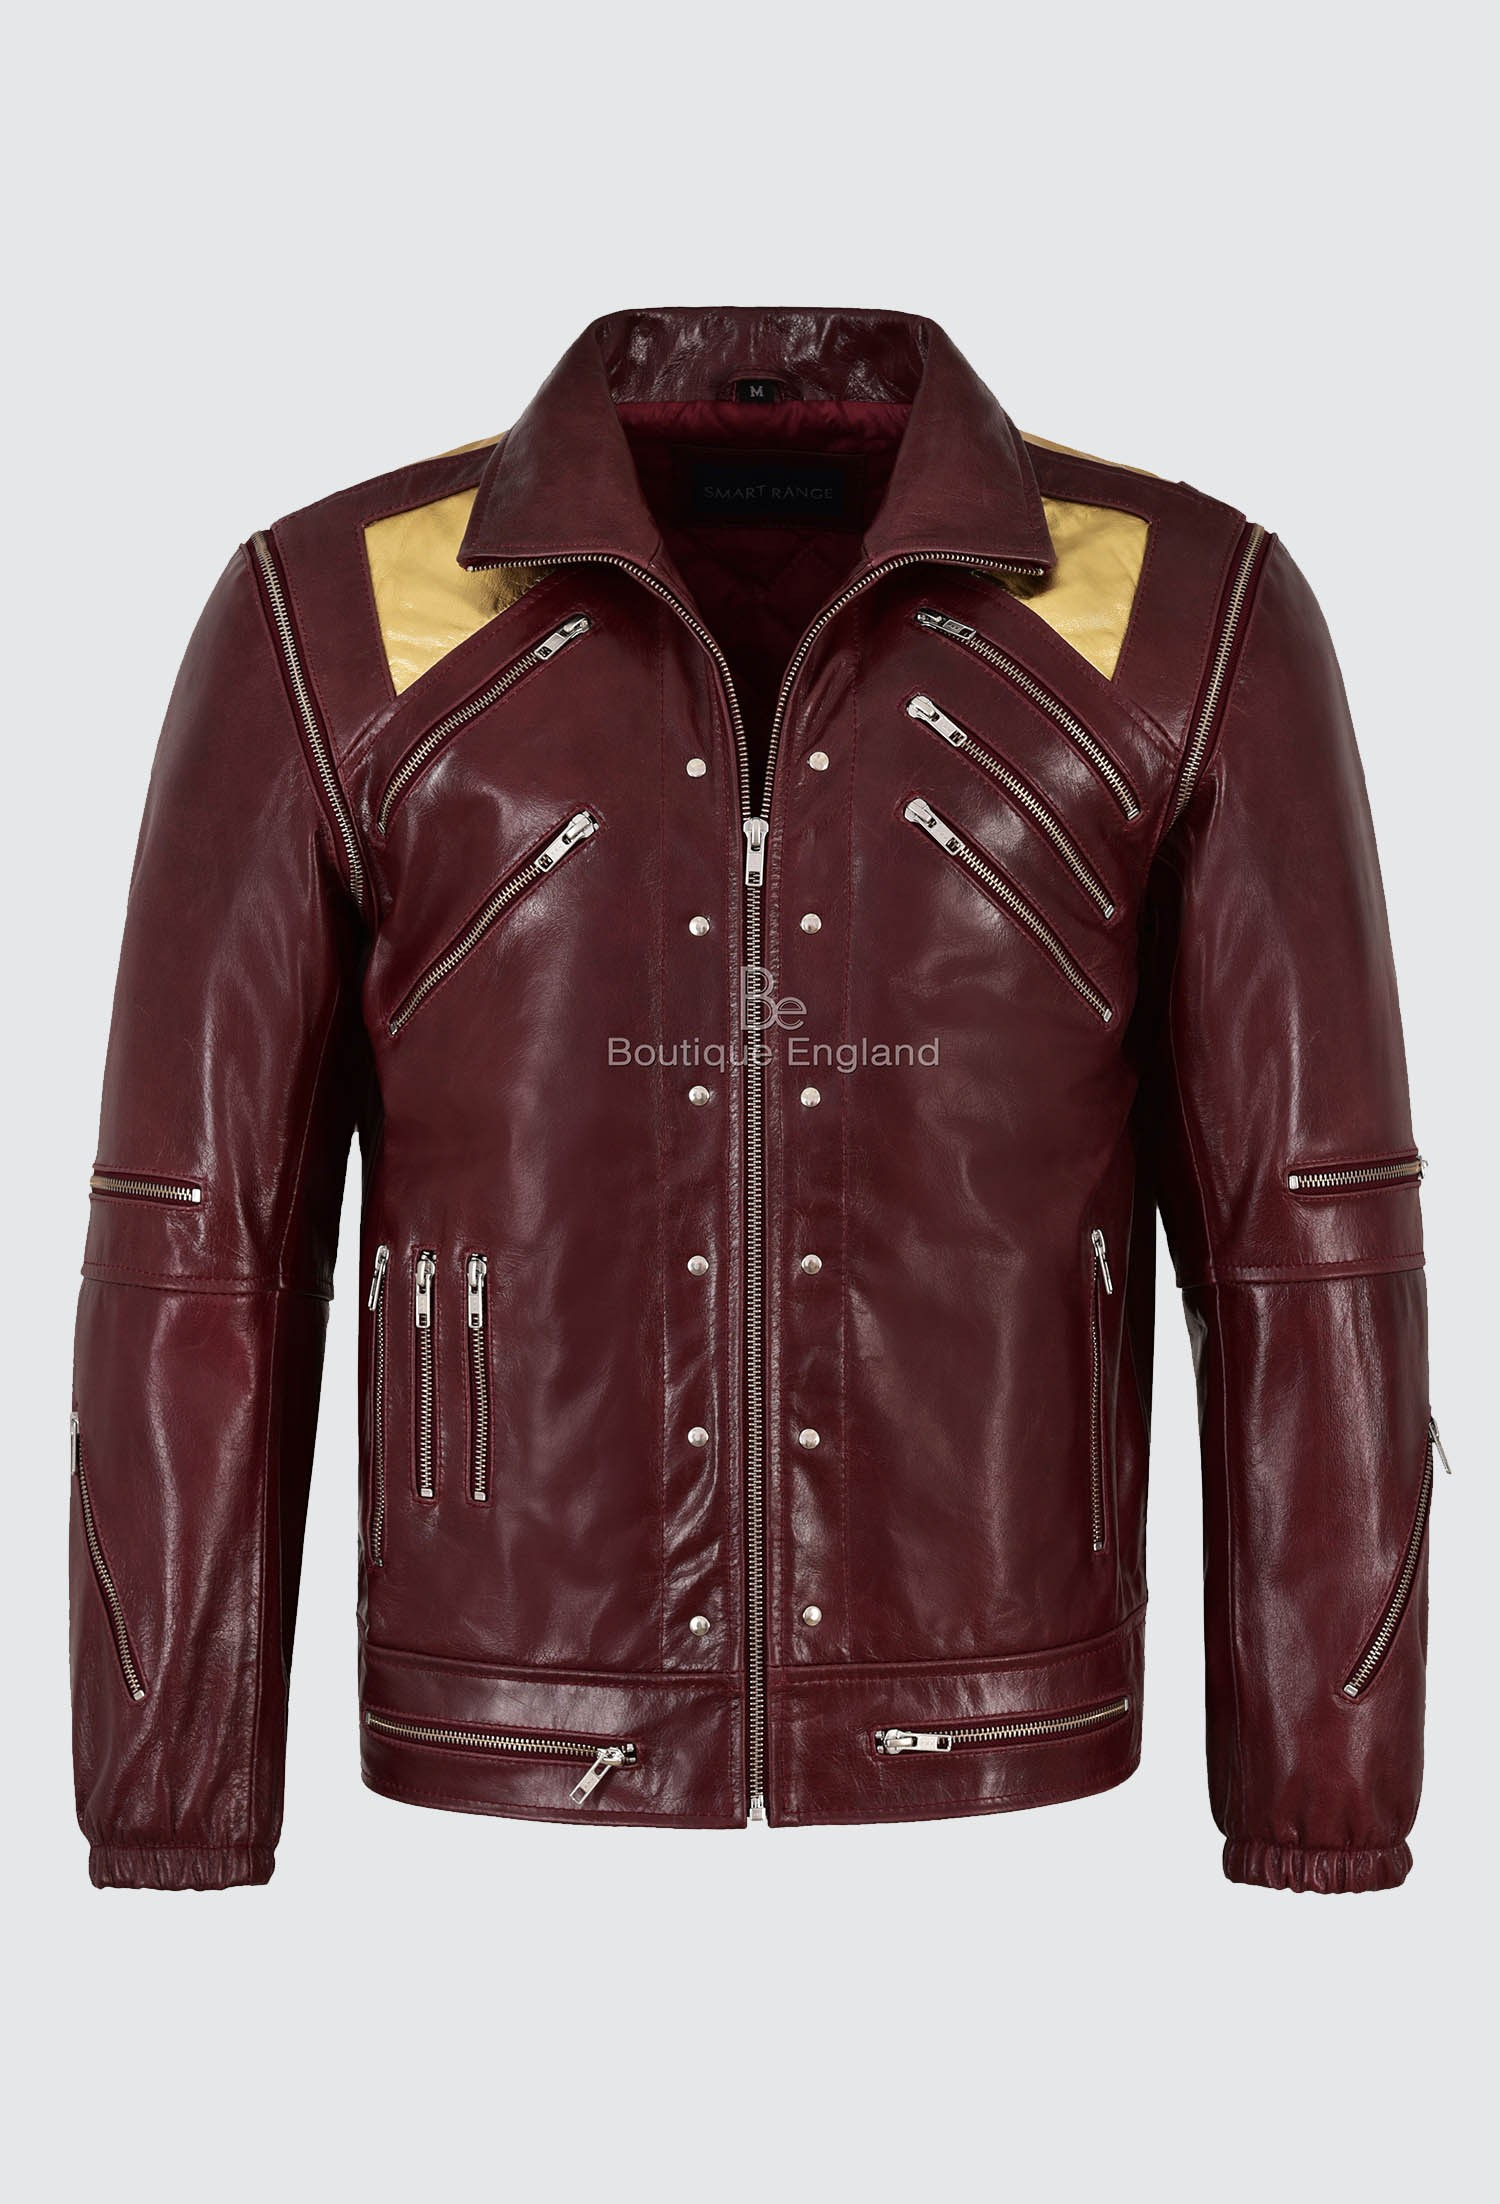 Men's Real Leather Jacket Cherry Red Glaze Michael Jackson Music Style BEAT IT